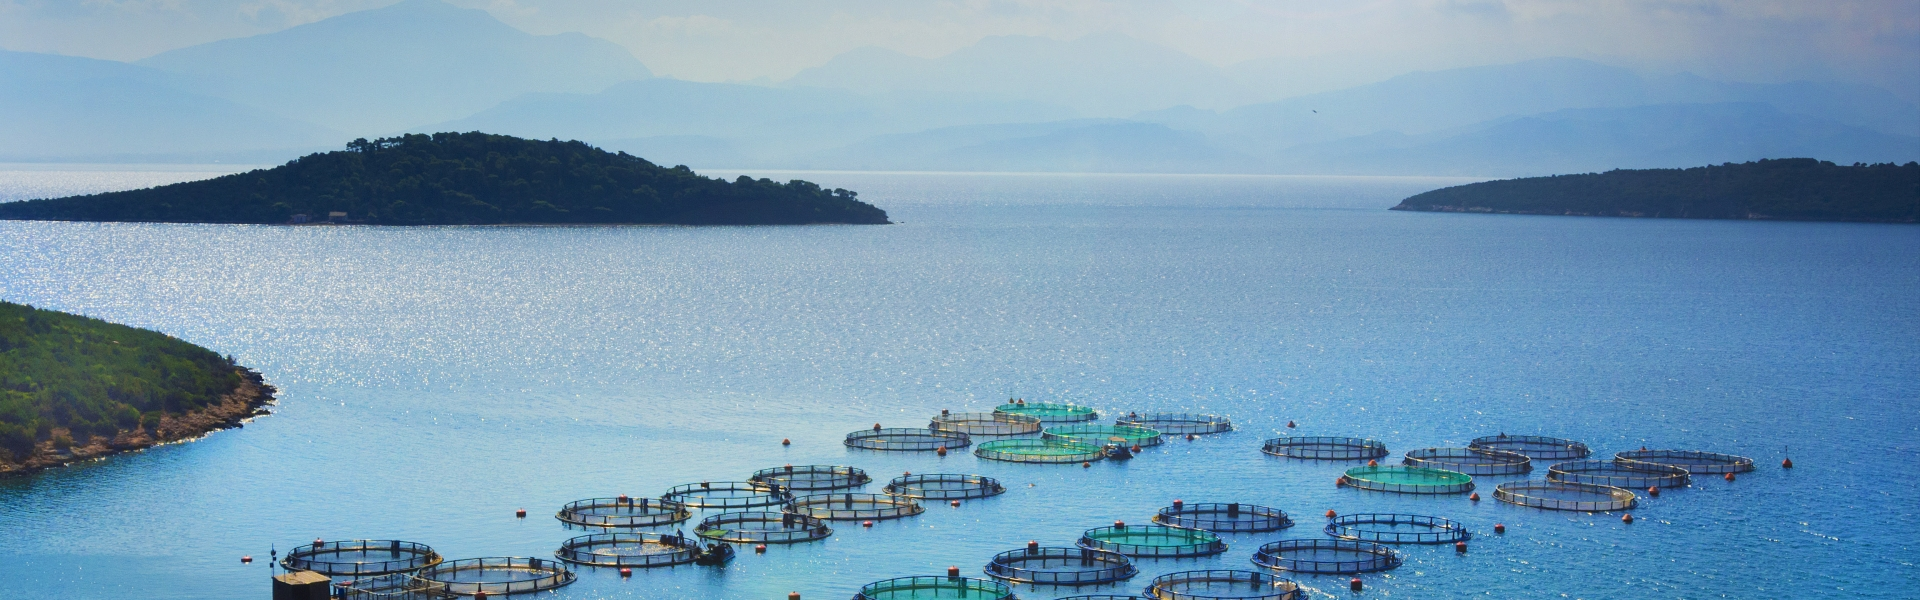 Aquaculture nets on a blue ocean